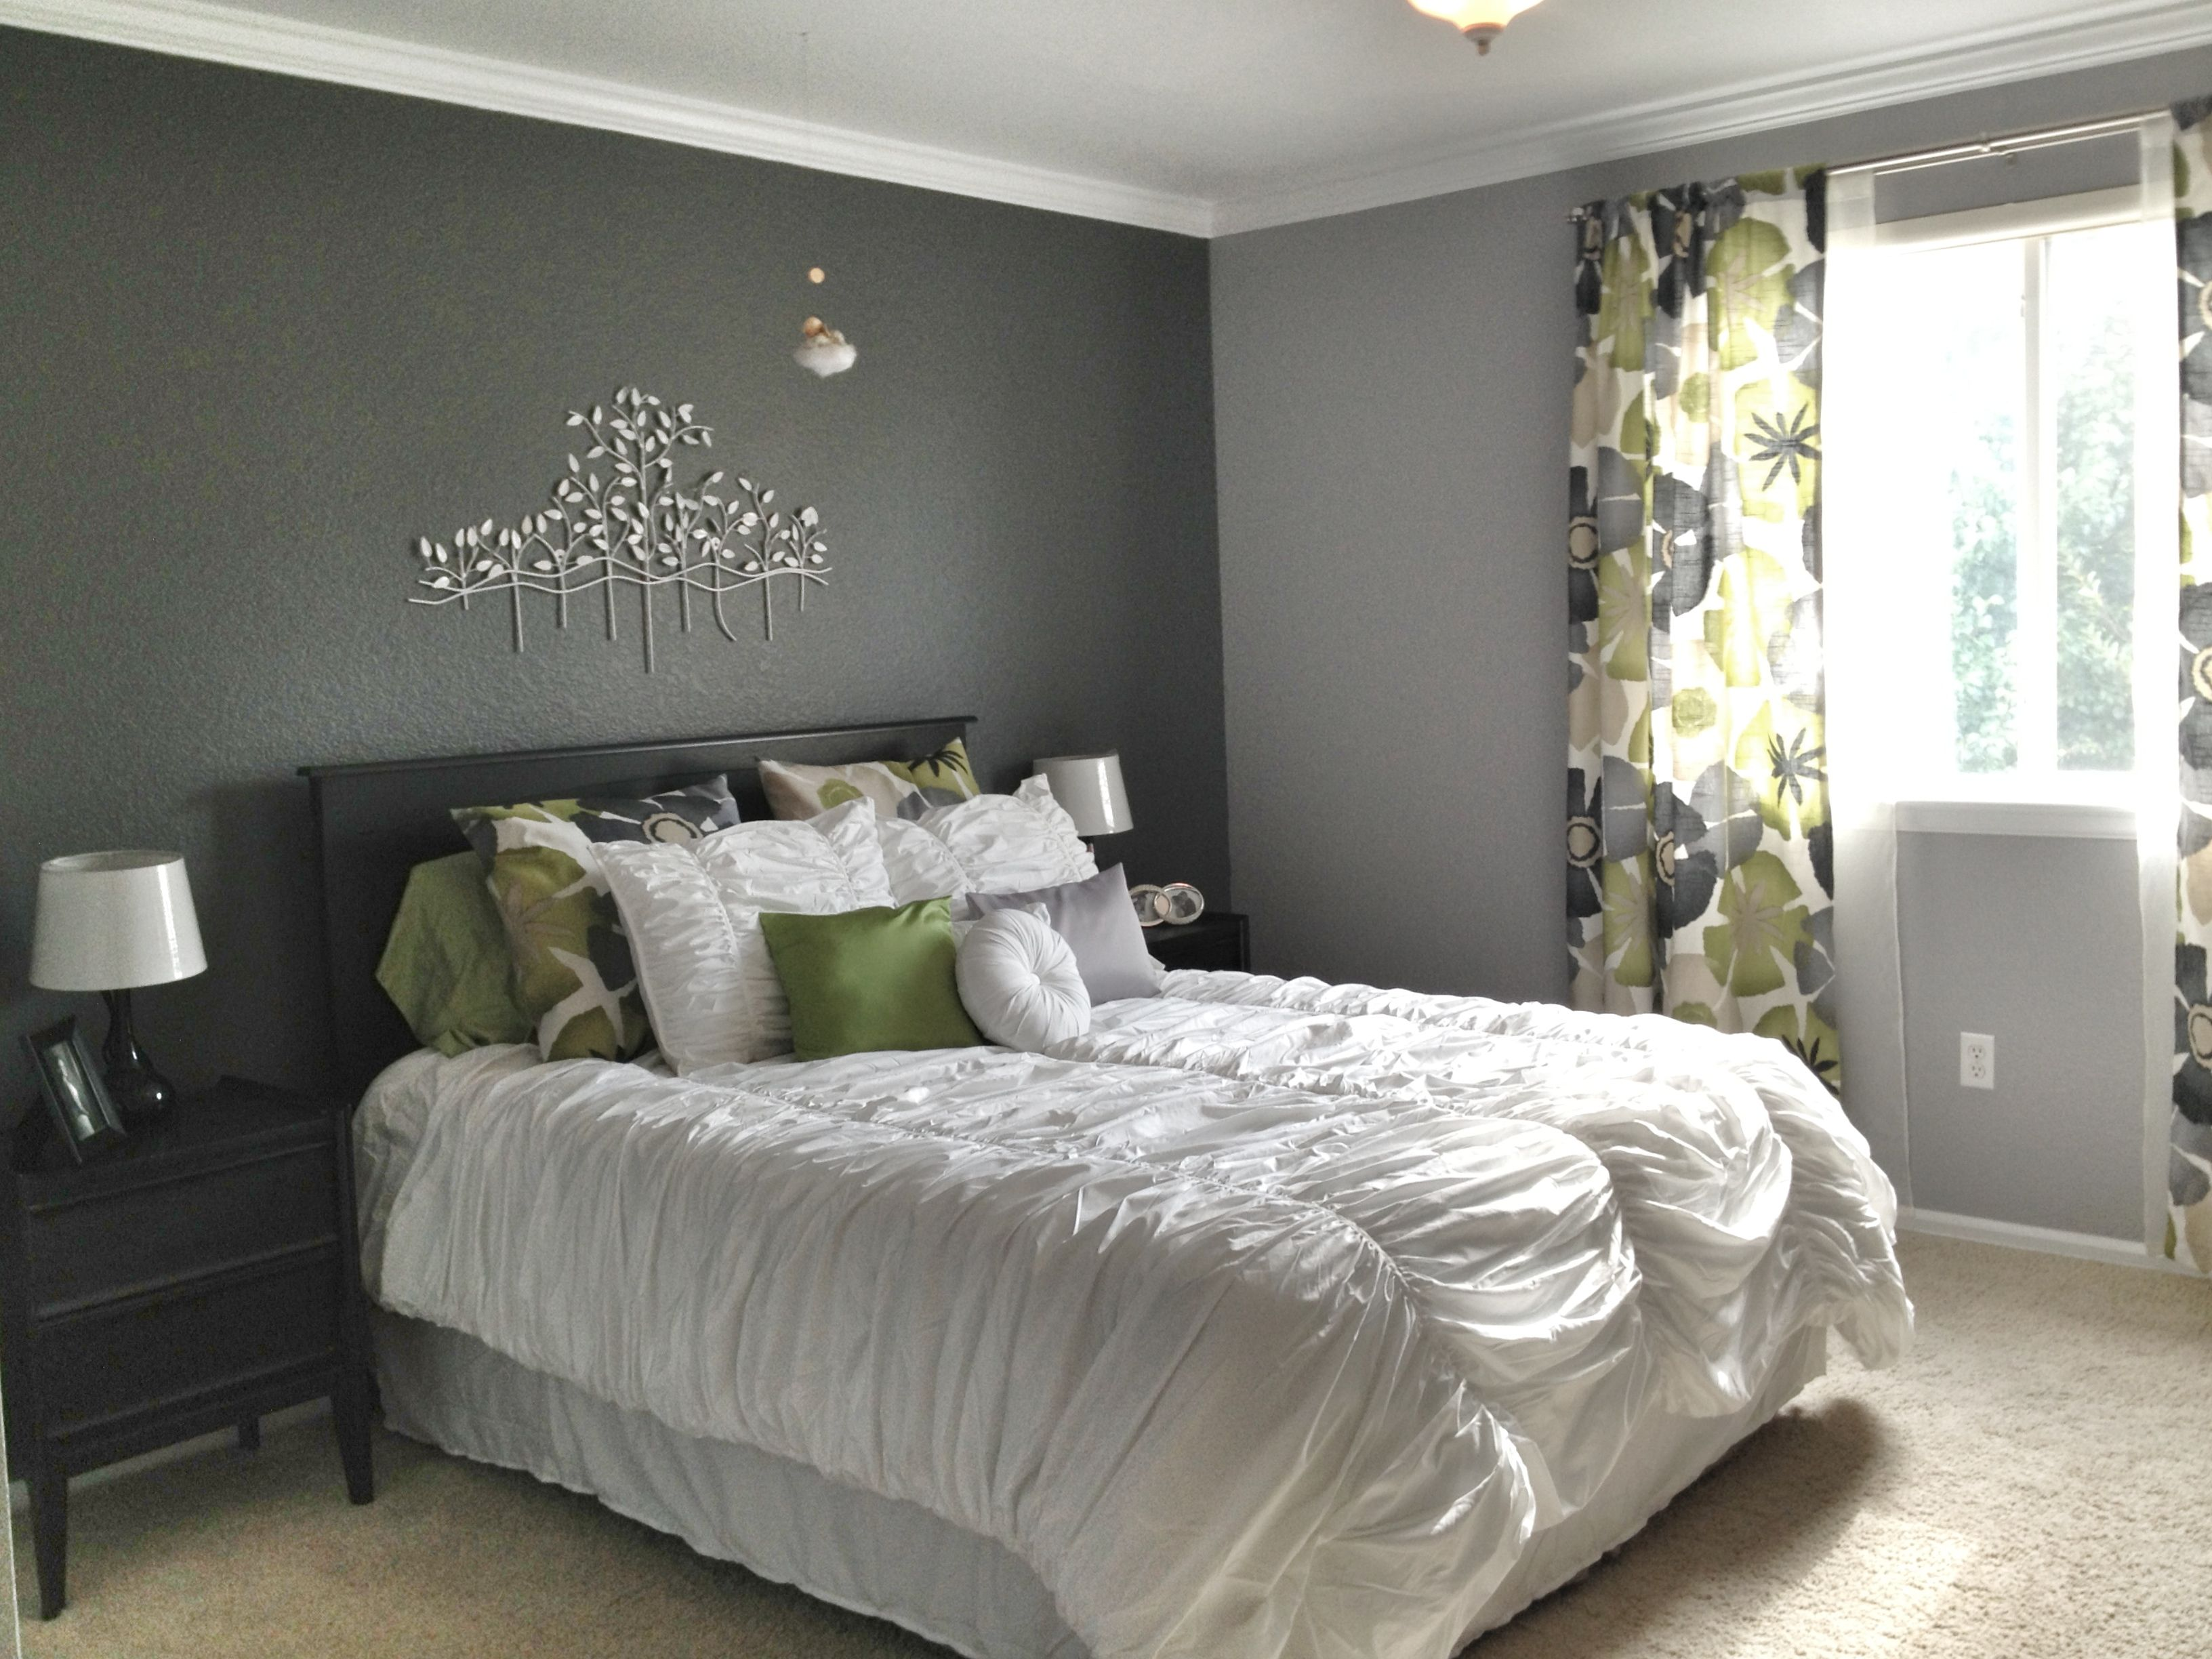 Accent Wall Ideas Walls Are Functional Parts Of Our Home Or Office But They Can Also H Gray Accent Wall Bedroom Master Bedroom Wall Decor Gray Bedroom Walls